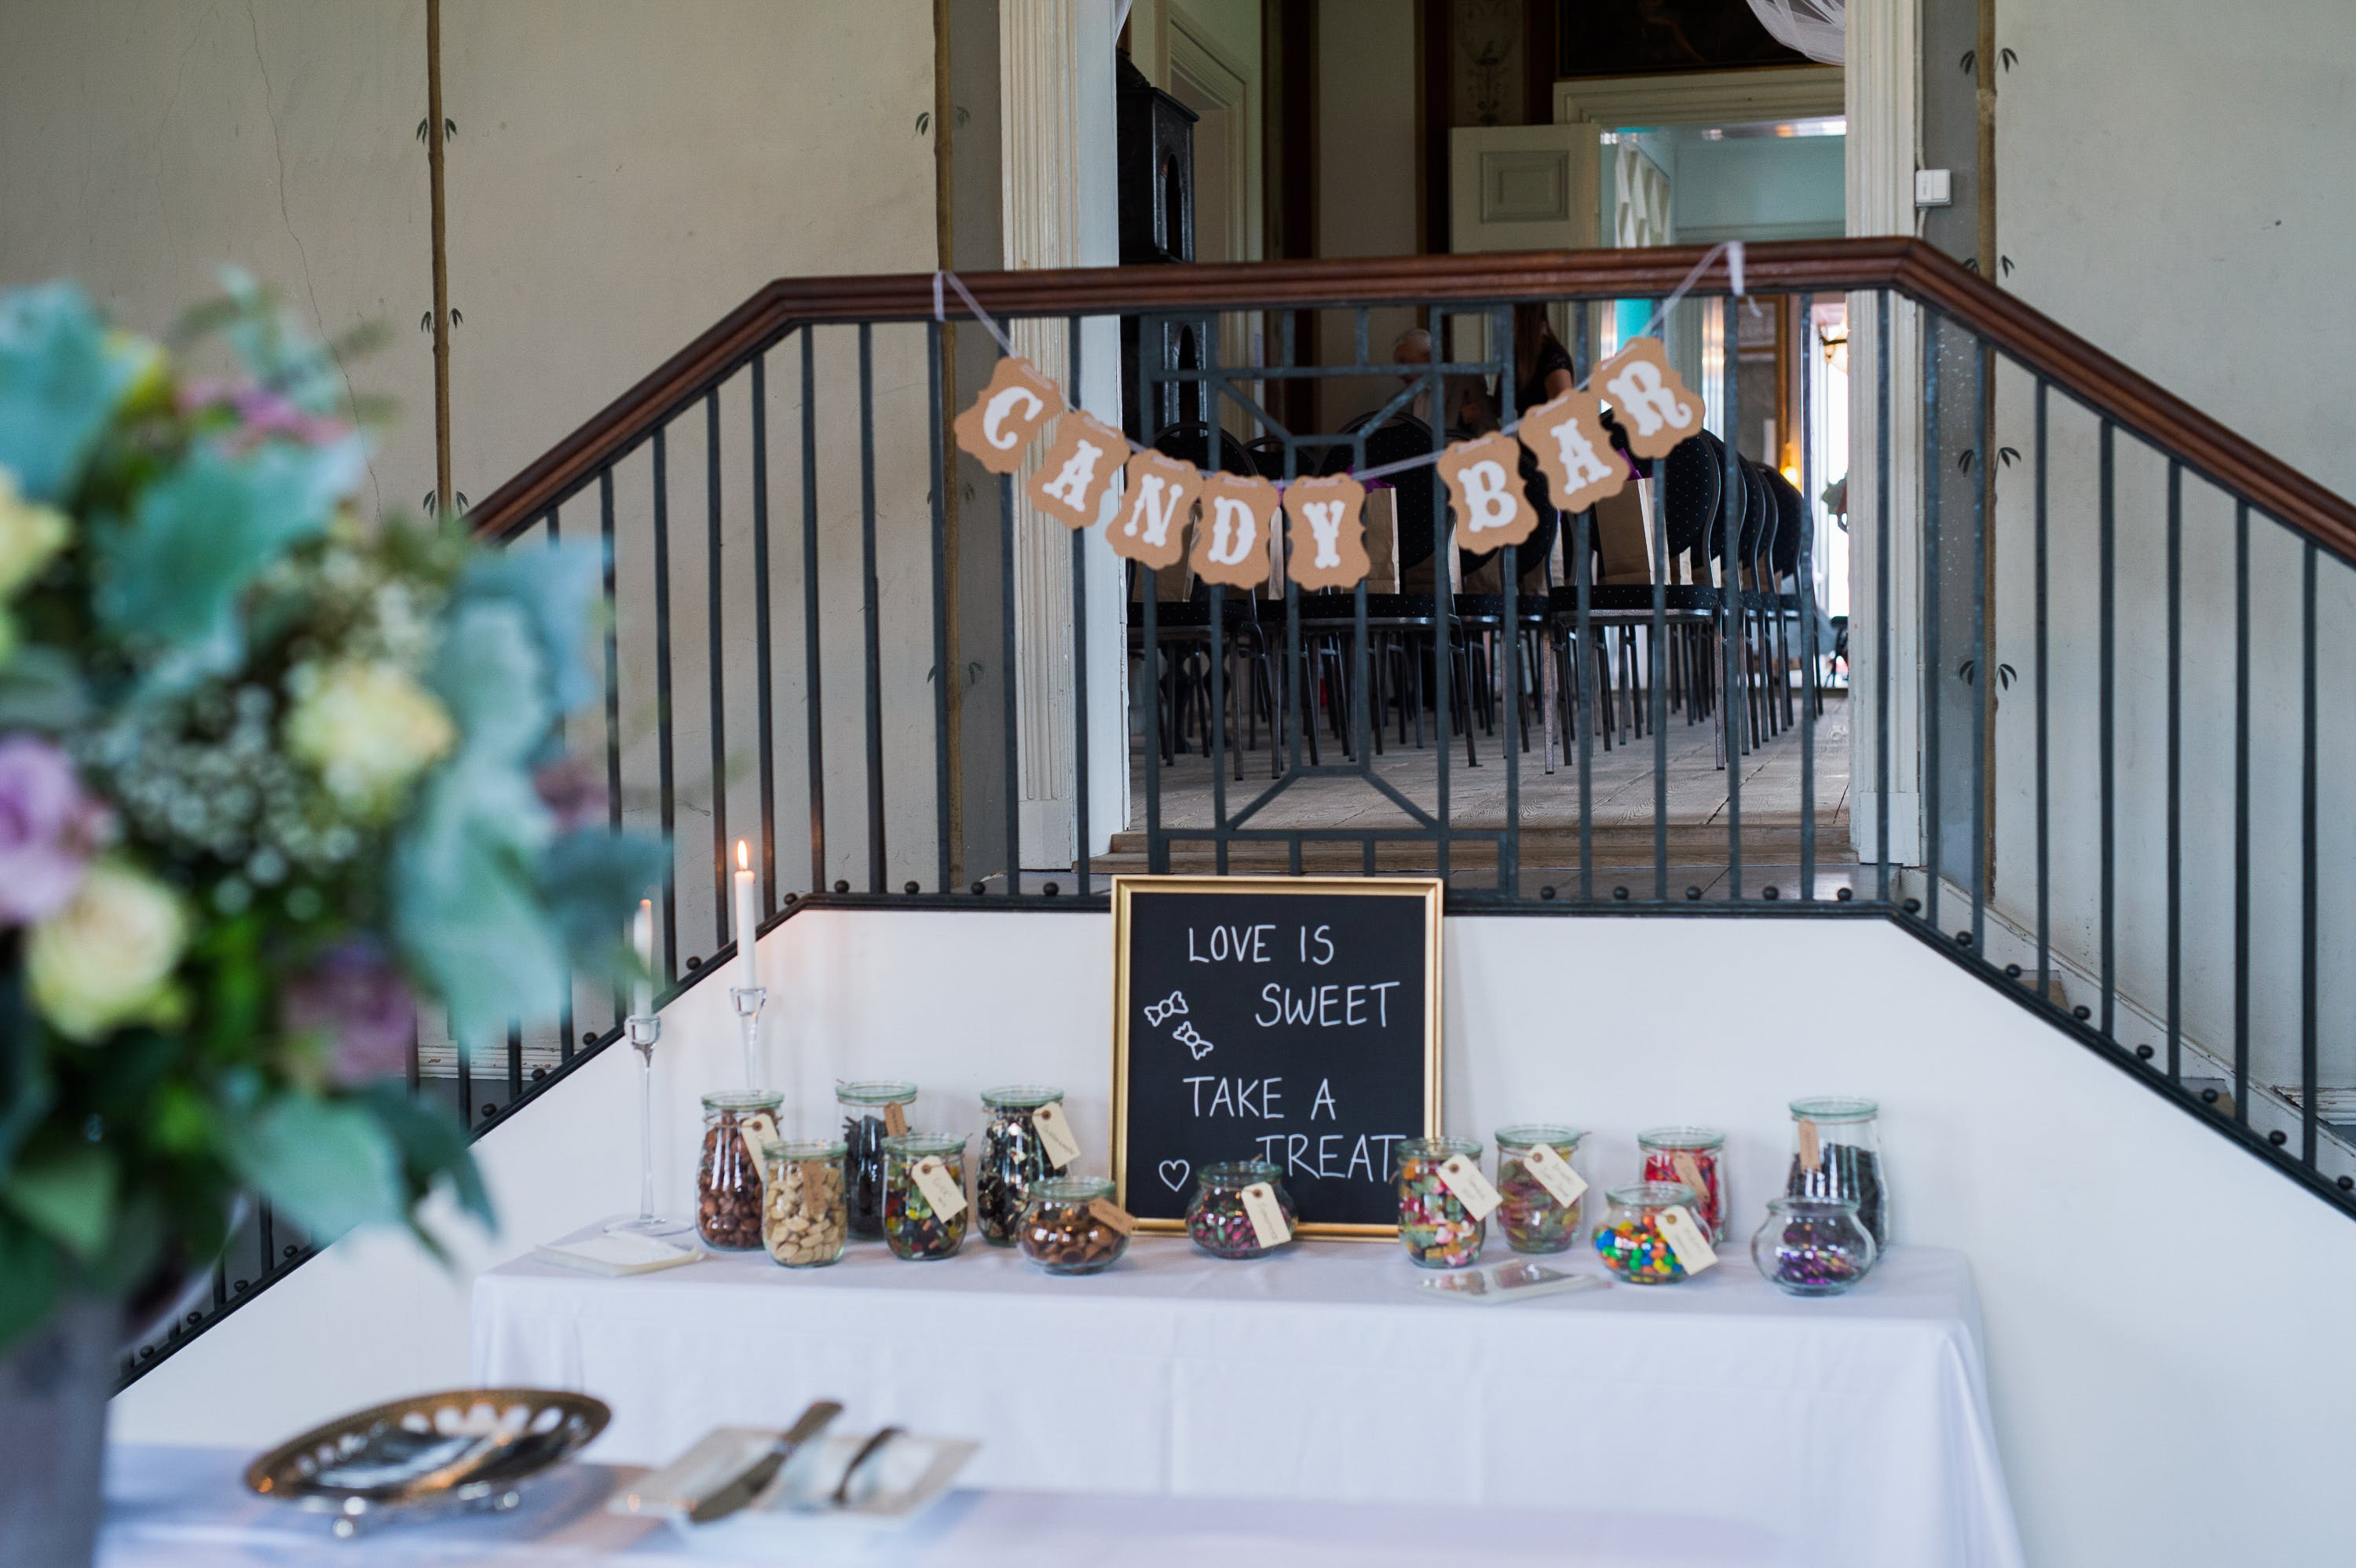 Candy Bar Hanging Decor on Railings